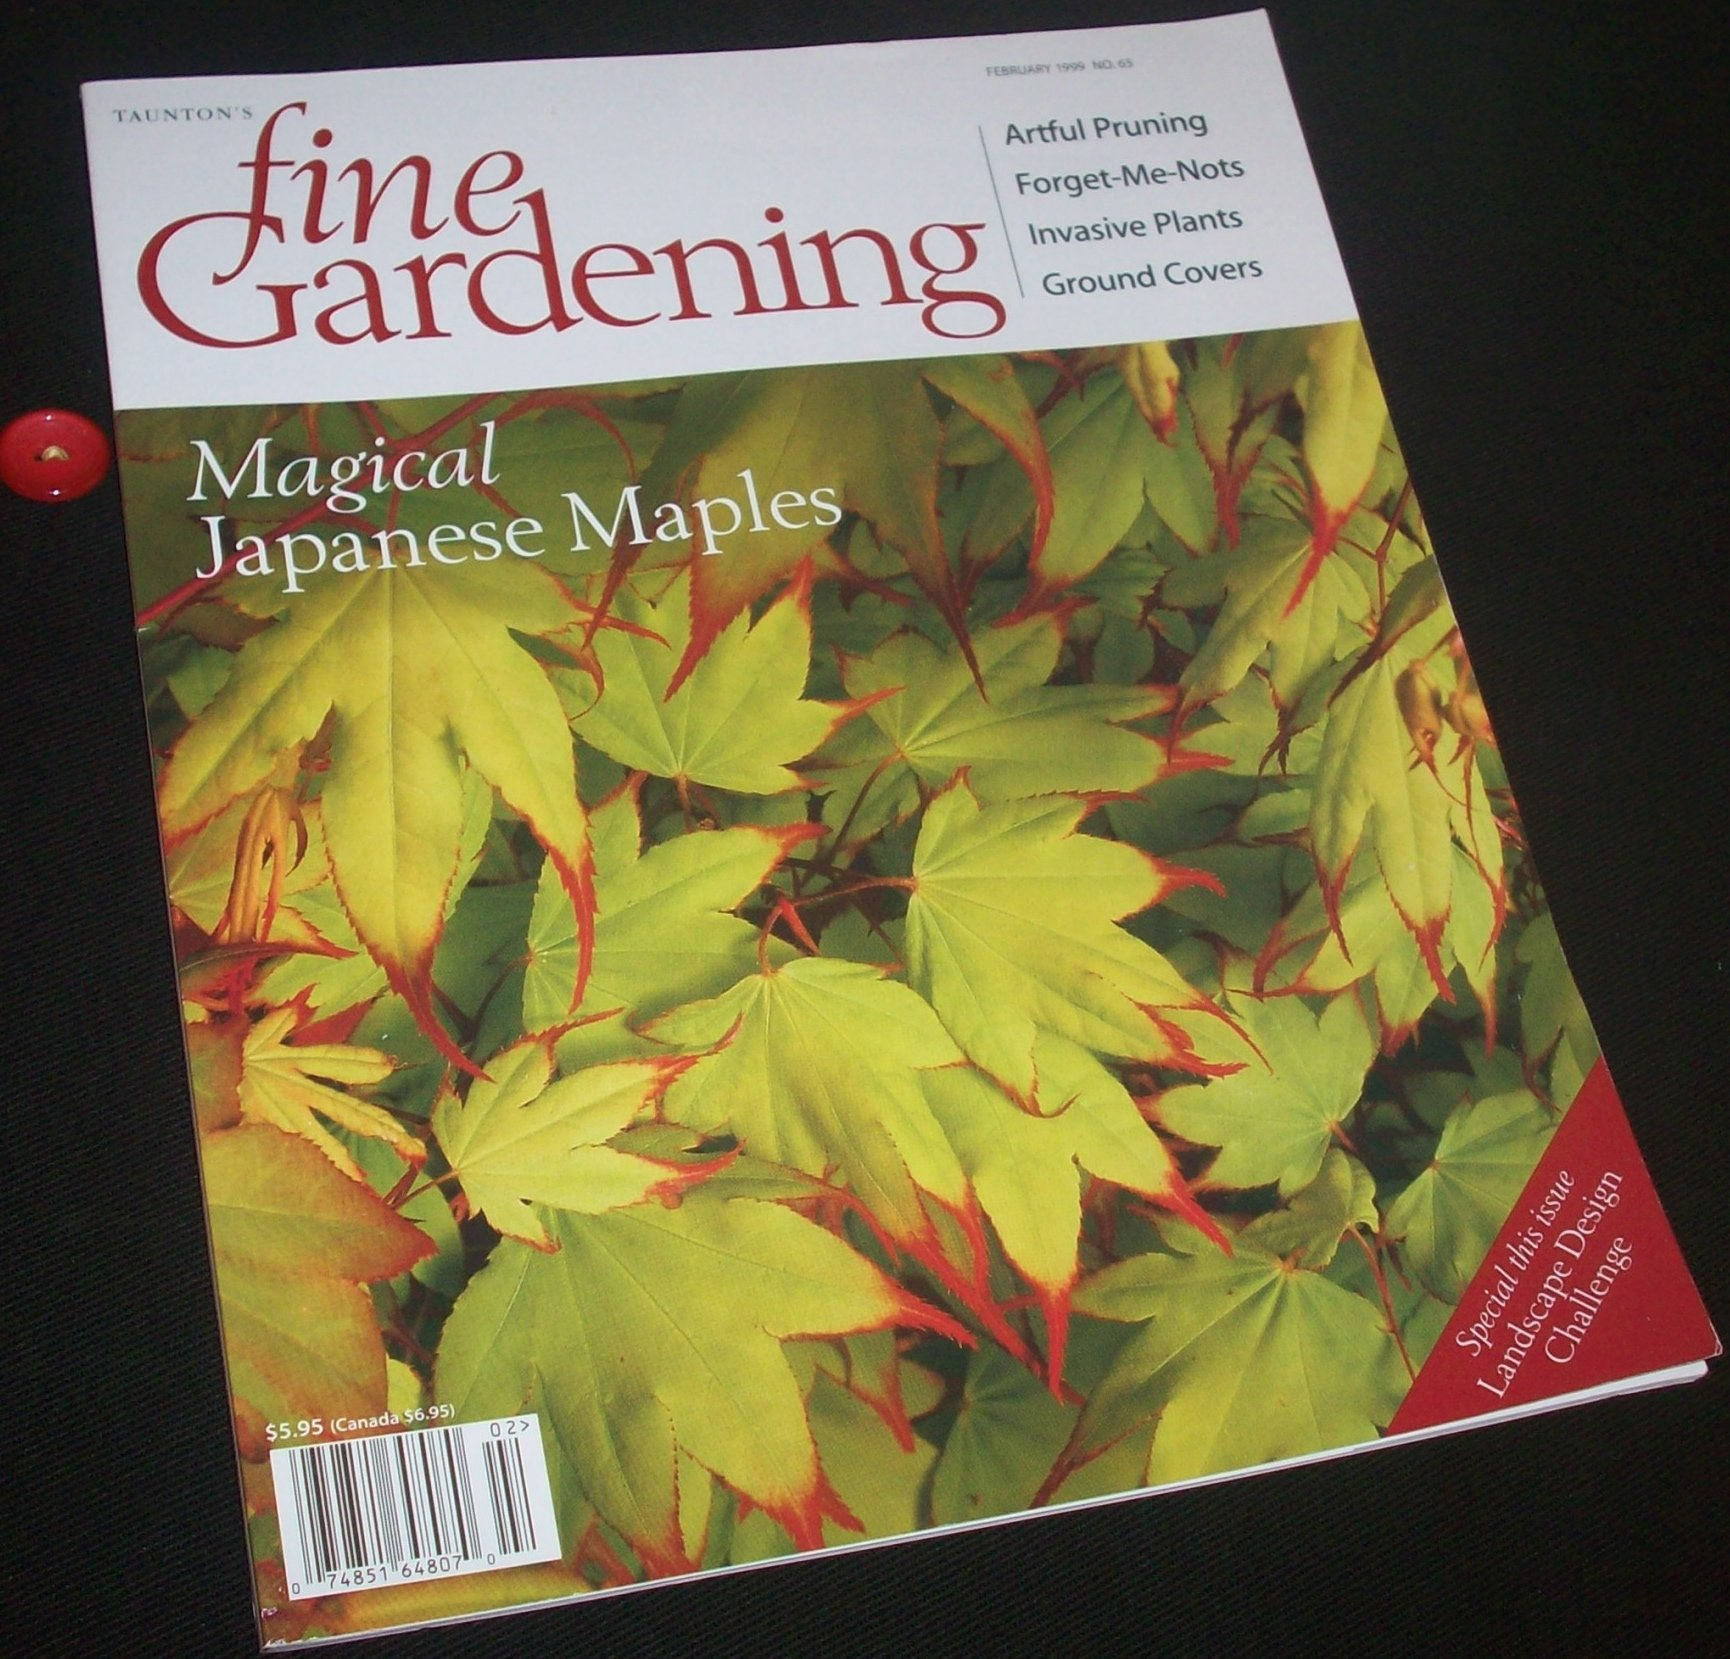 Tauntons Fine Gardening Magazine Volume 65, February 1999 Including: Magical Japanese Maples; Keeping up with an Ever Changing Garden